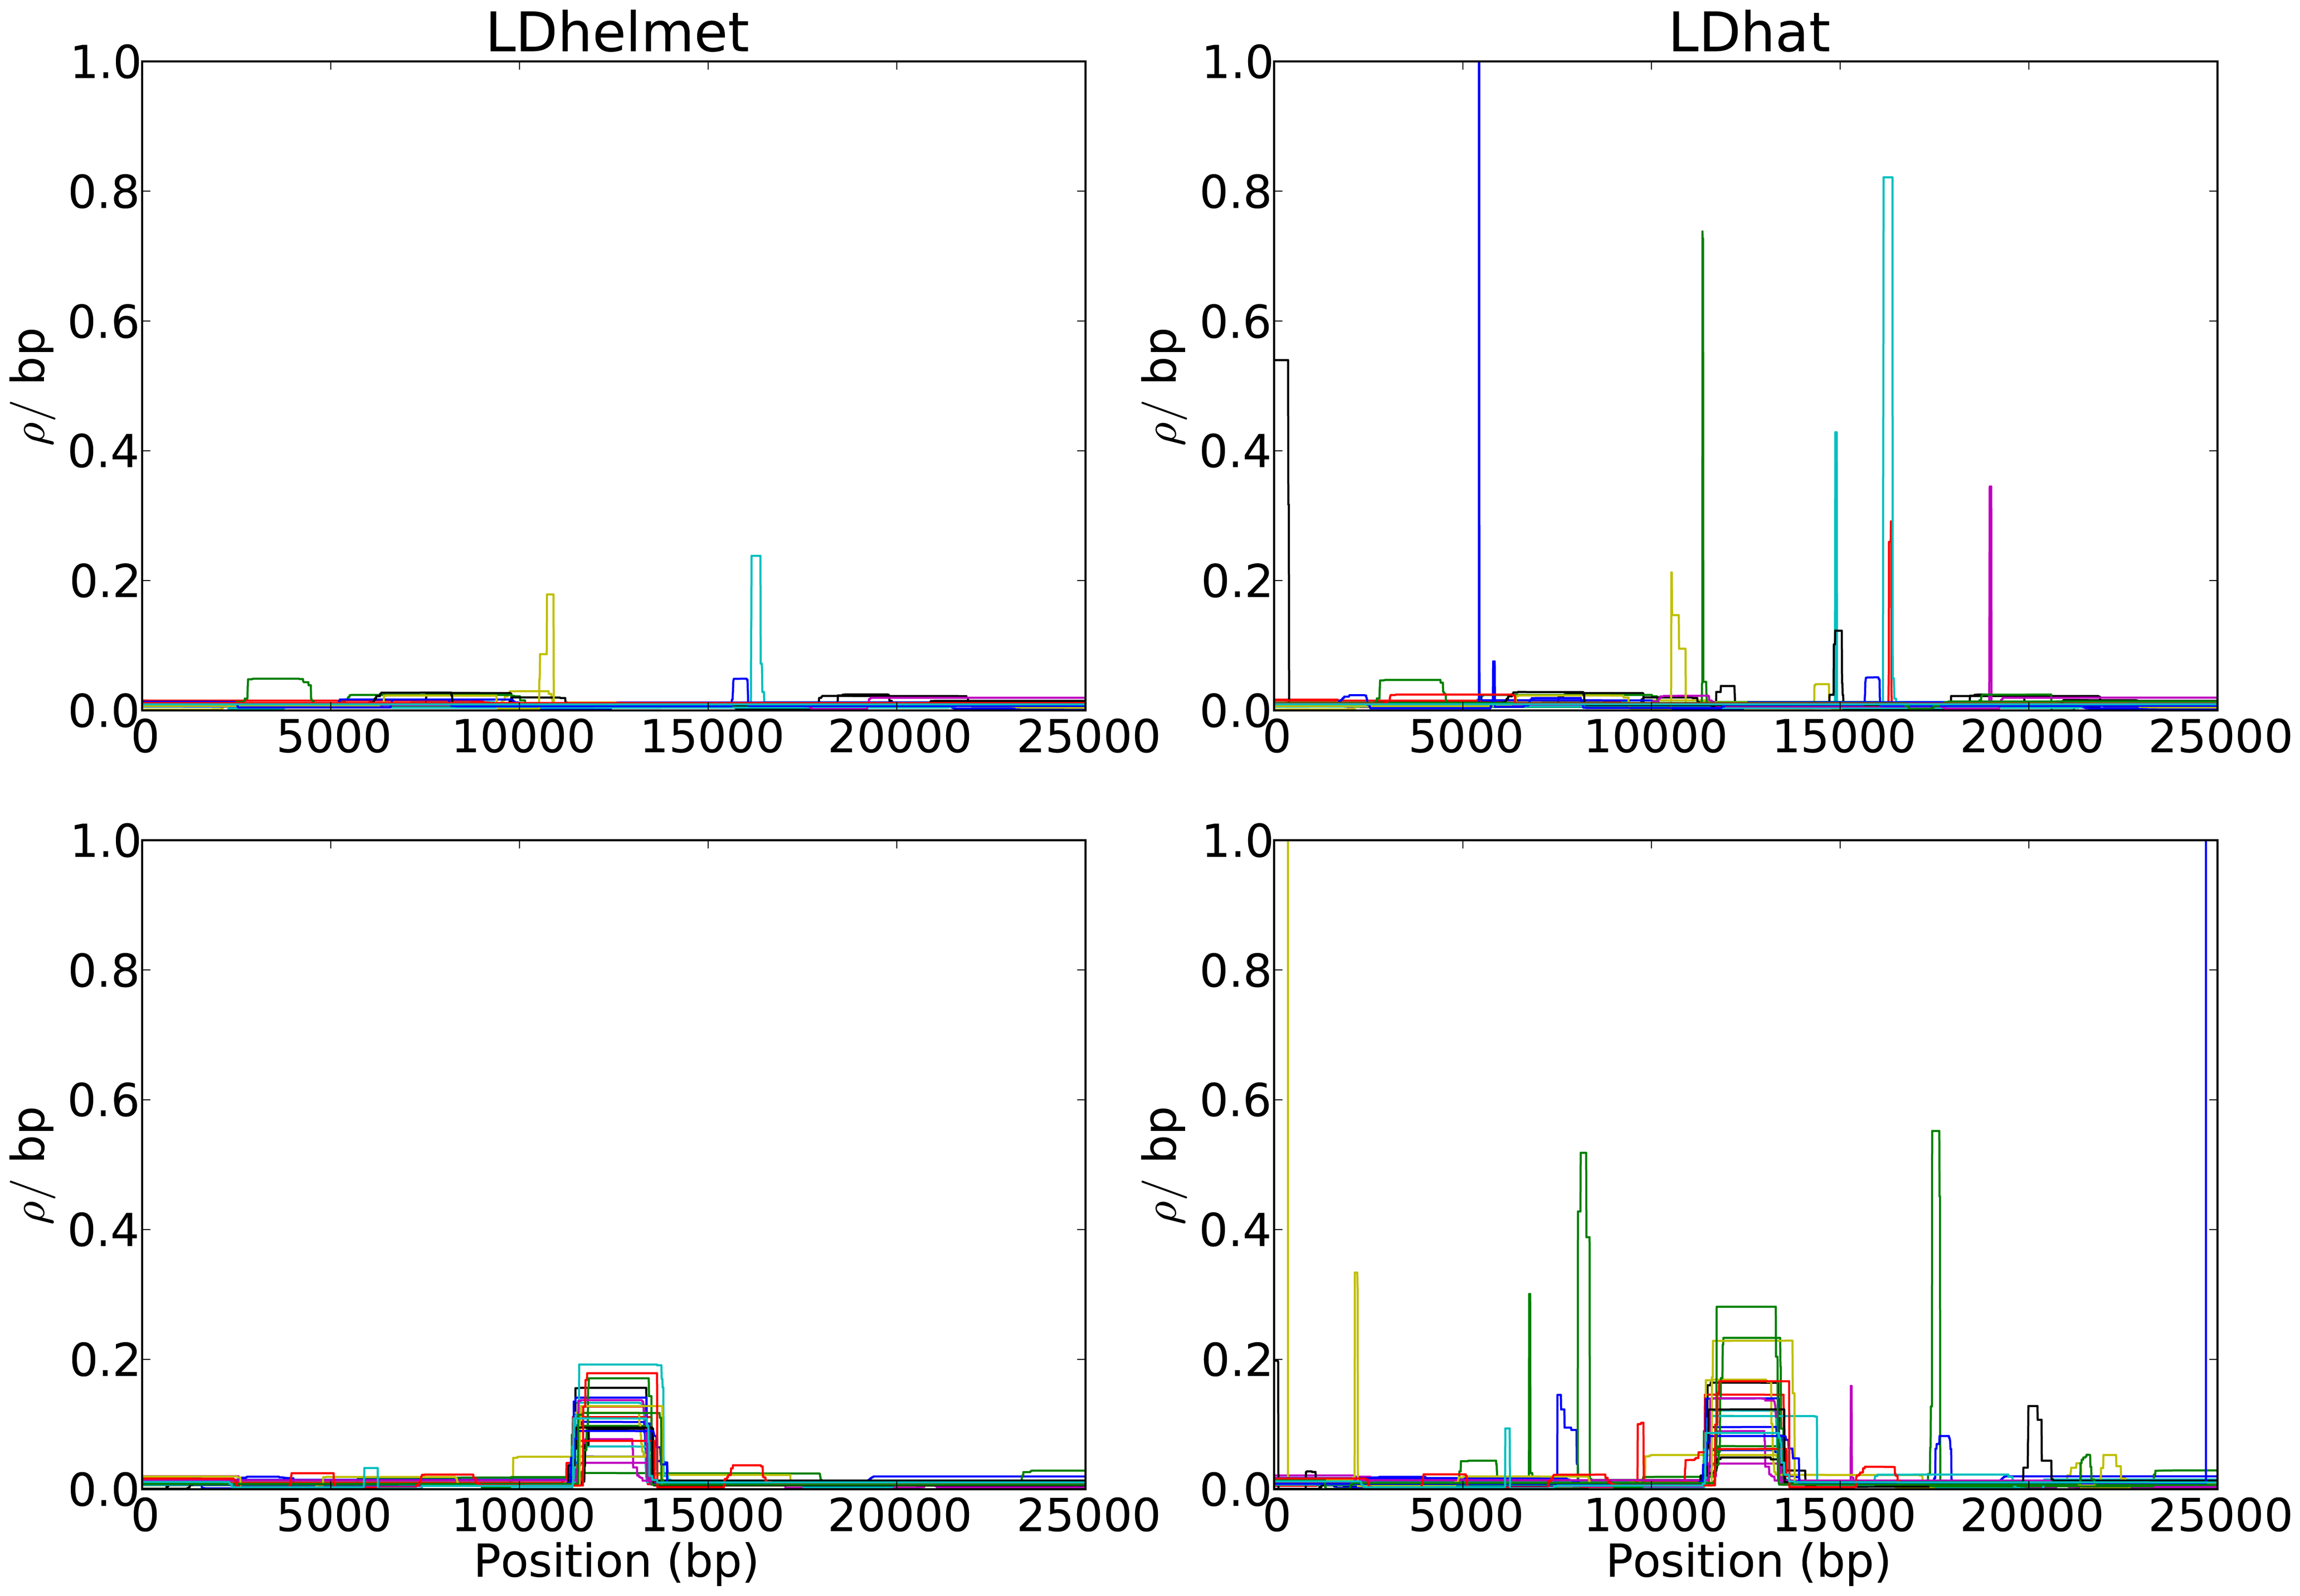 Comparison of the results of LDhelmet and LDhat for 25 datasets simulated under neutrality.